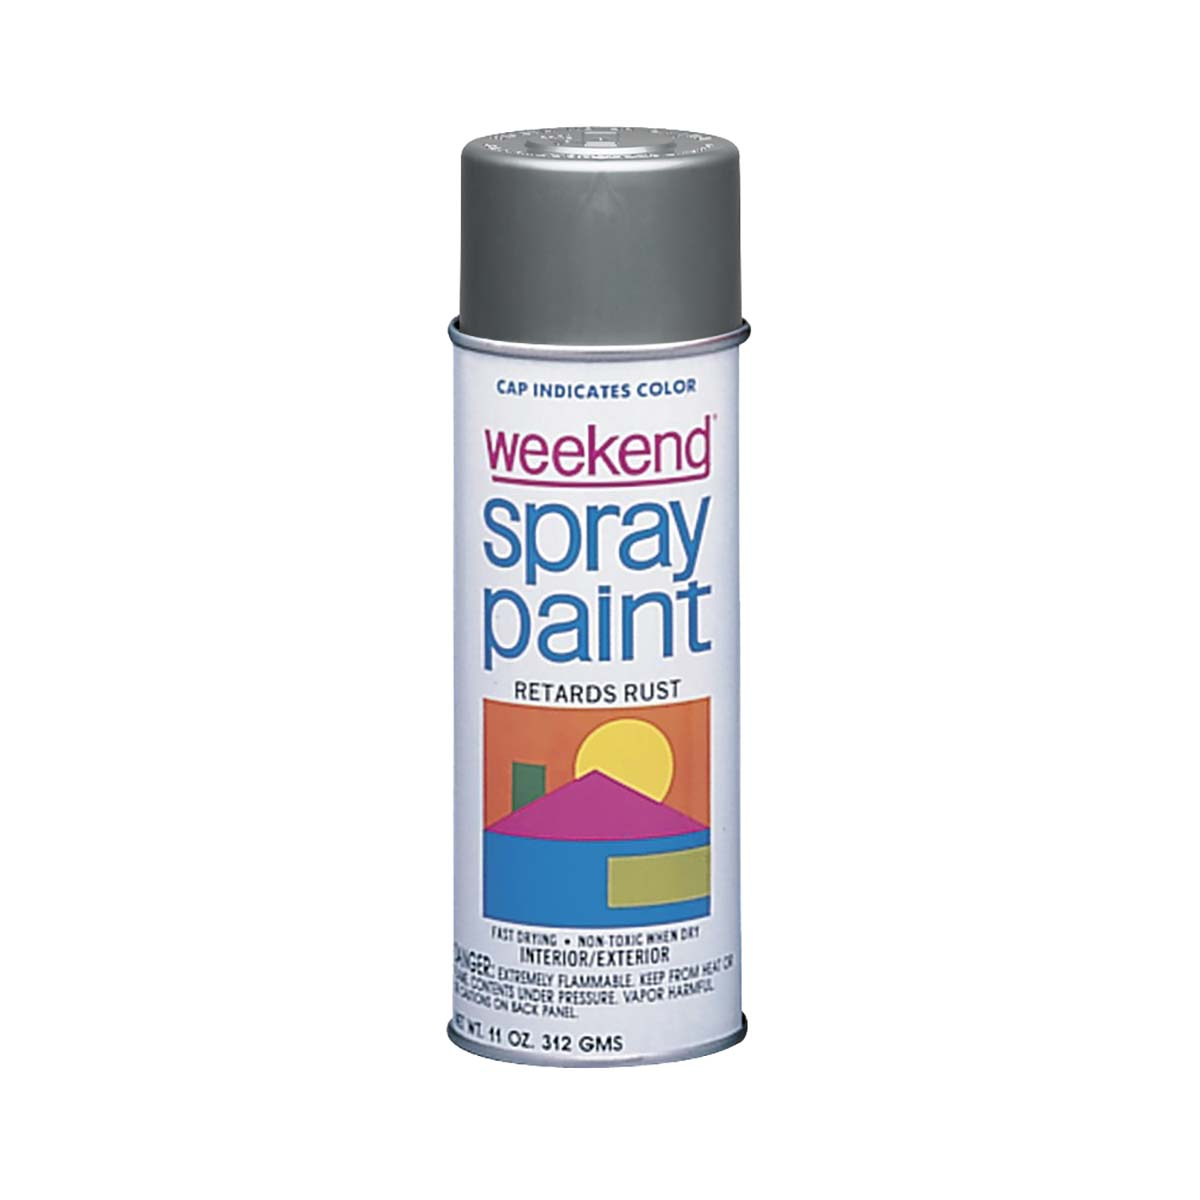 "Weekendâ""¢ Economy Paints, Chrome Aluminum"